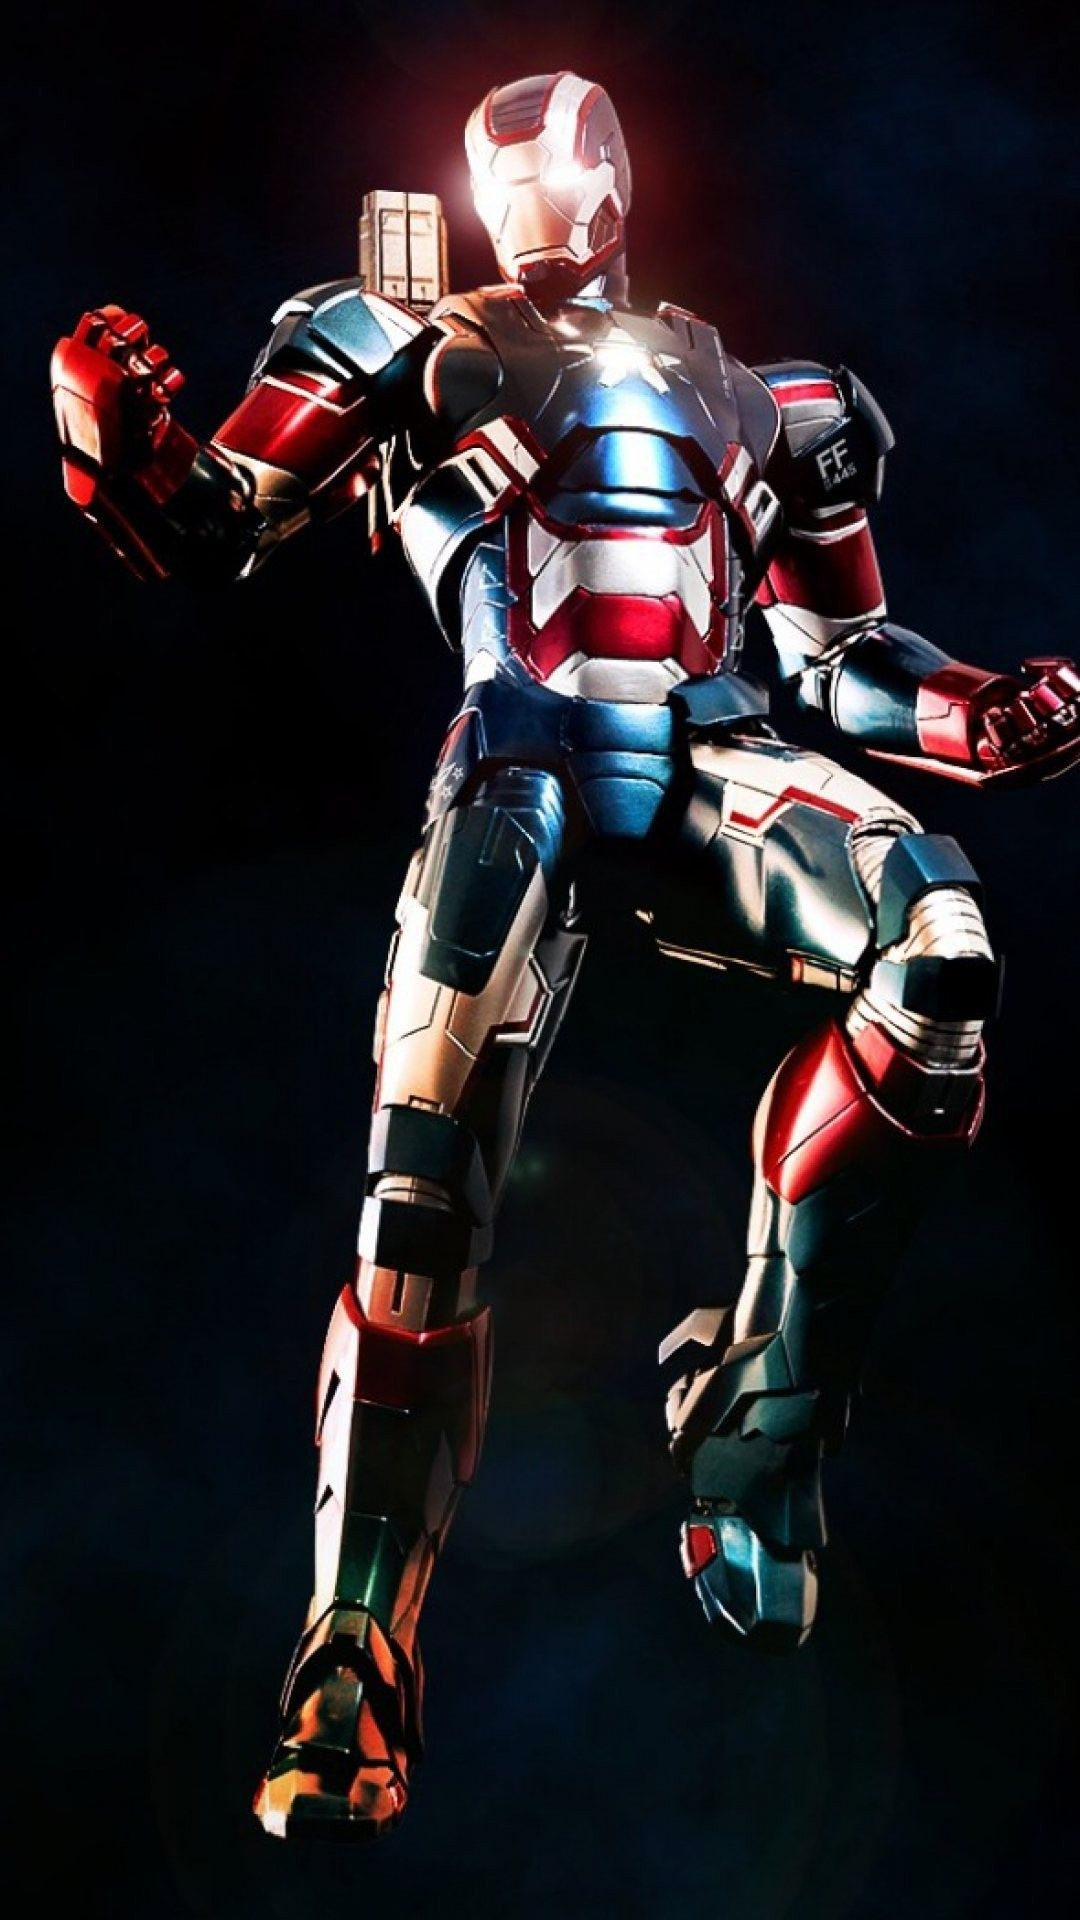 Iron Man Hd Wallpapers For Mobile